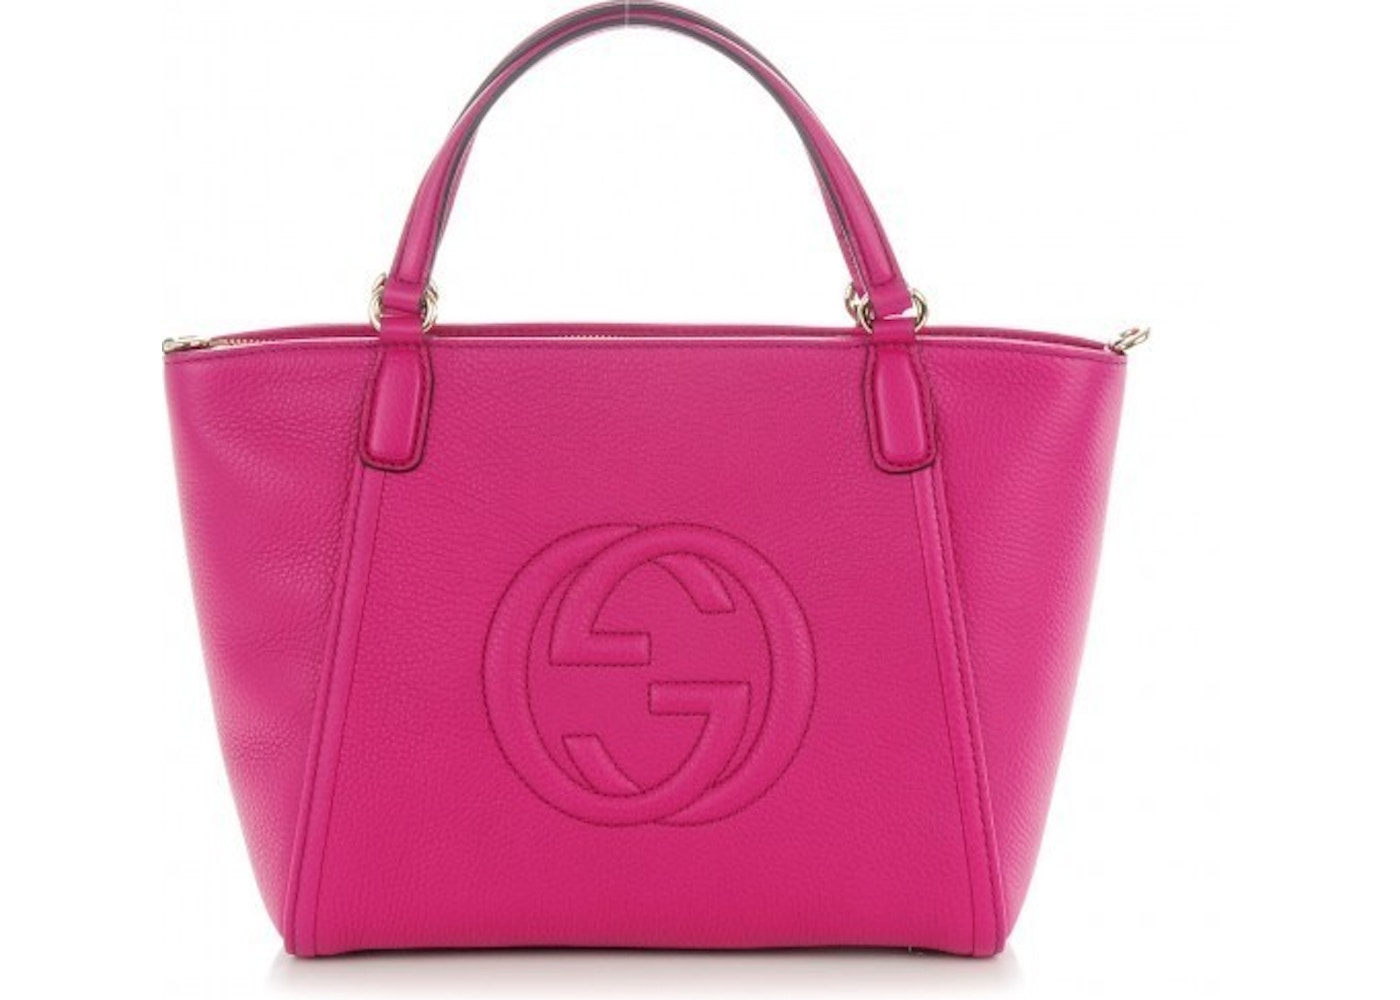 ba096eedb621 Buy   Sell Gucci Soho Disco Handbags